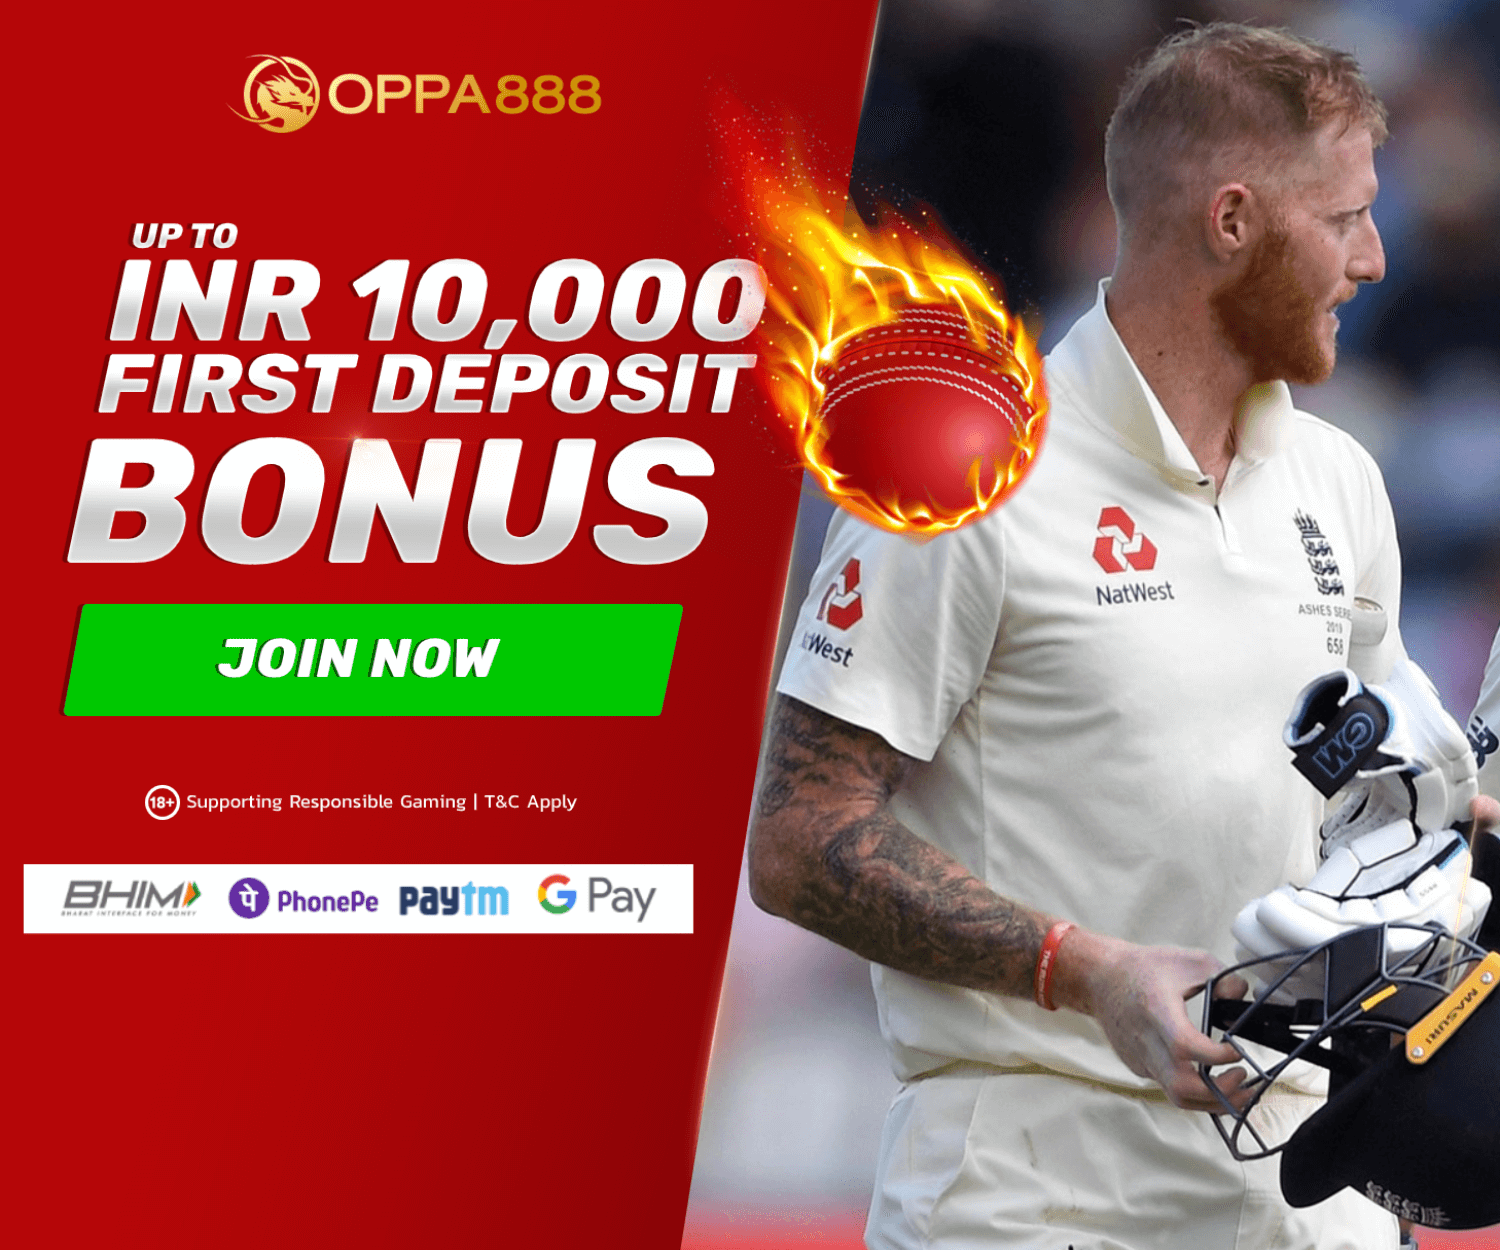 Register for Oppa888 bet and get Rs 10,000 welcome bonus